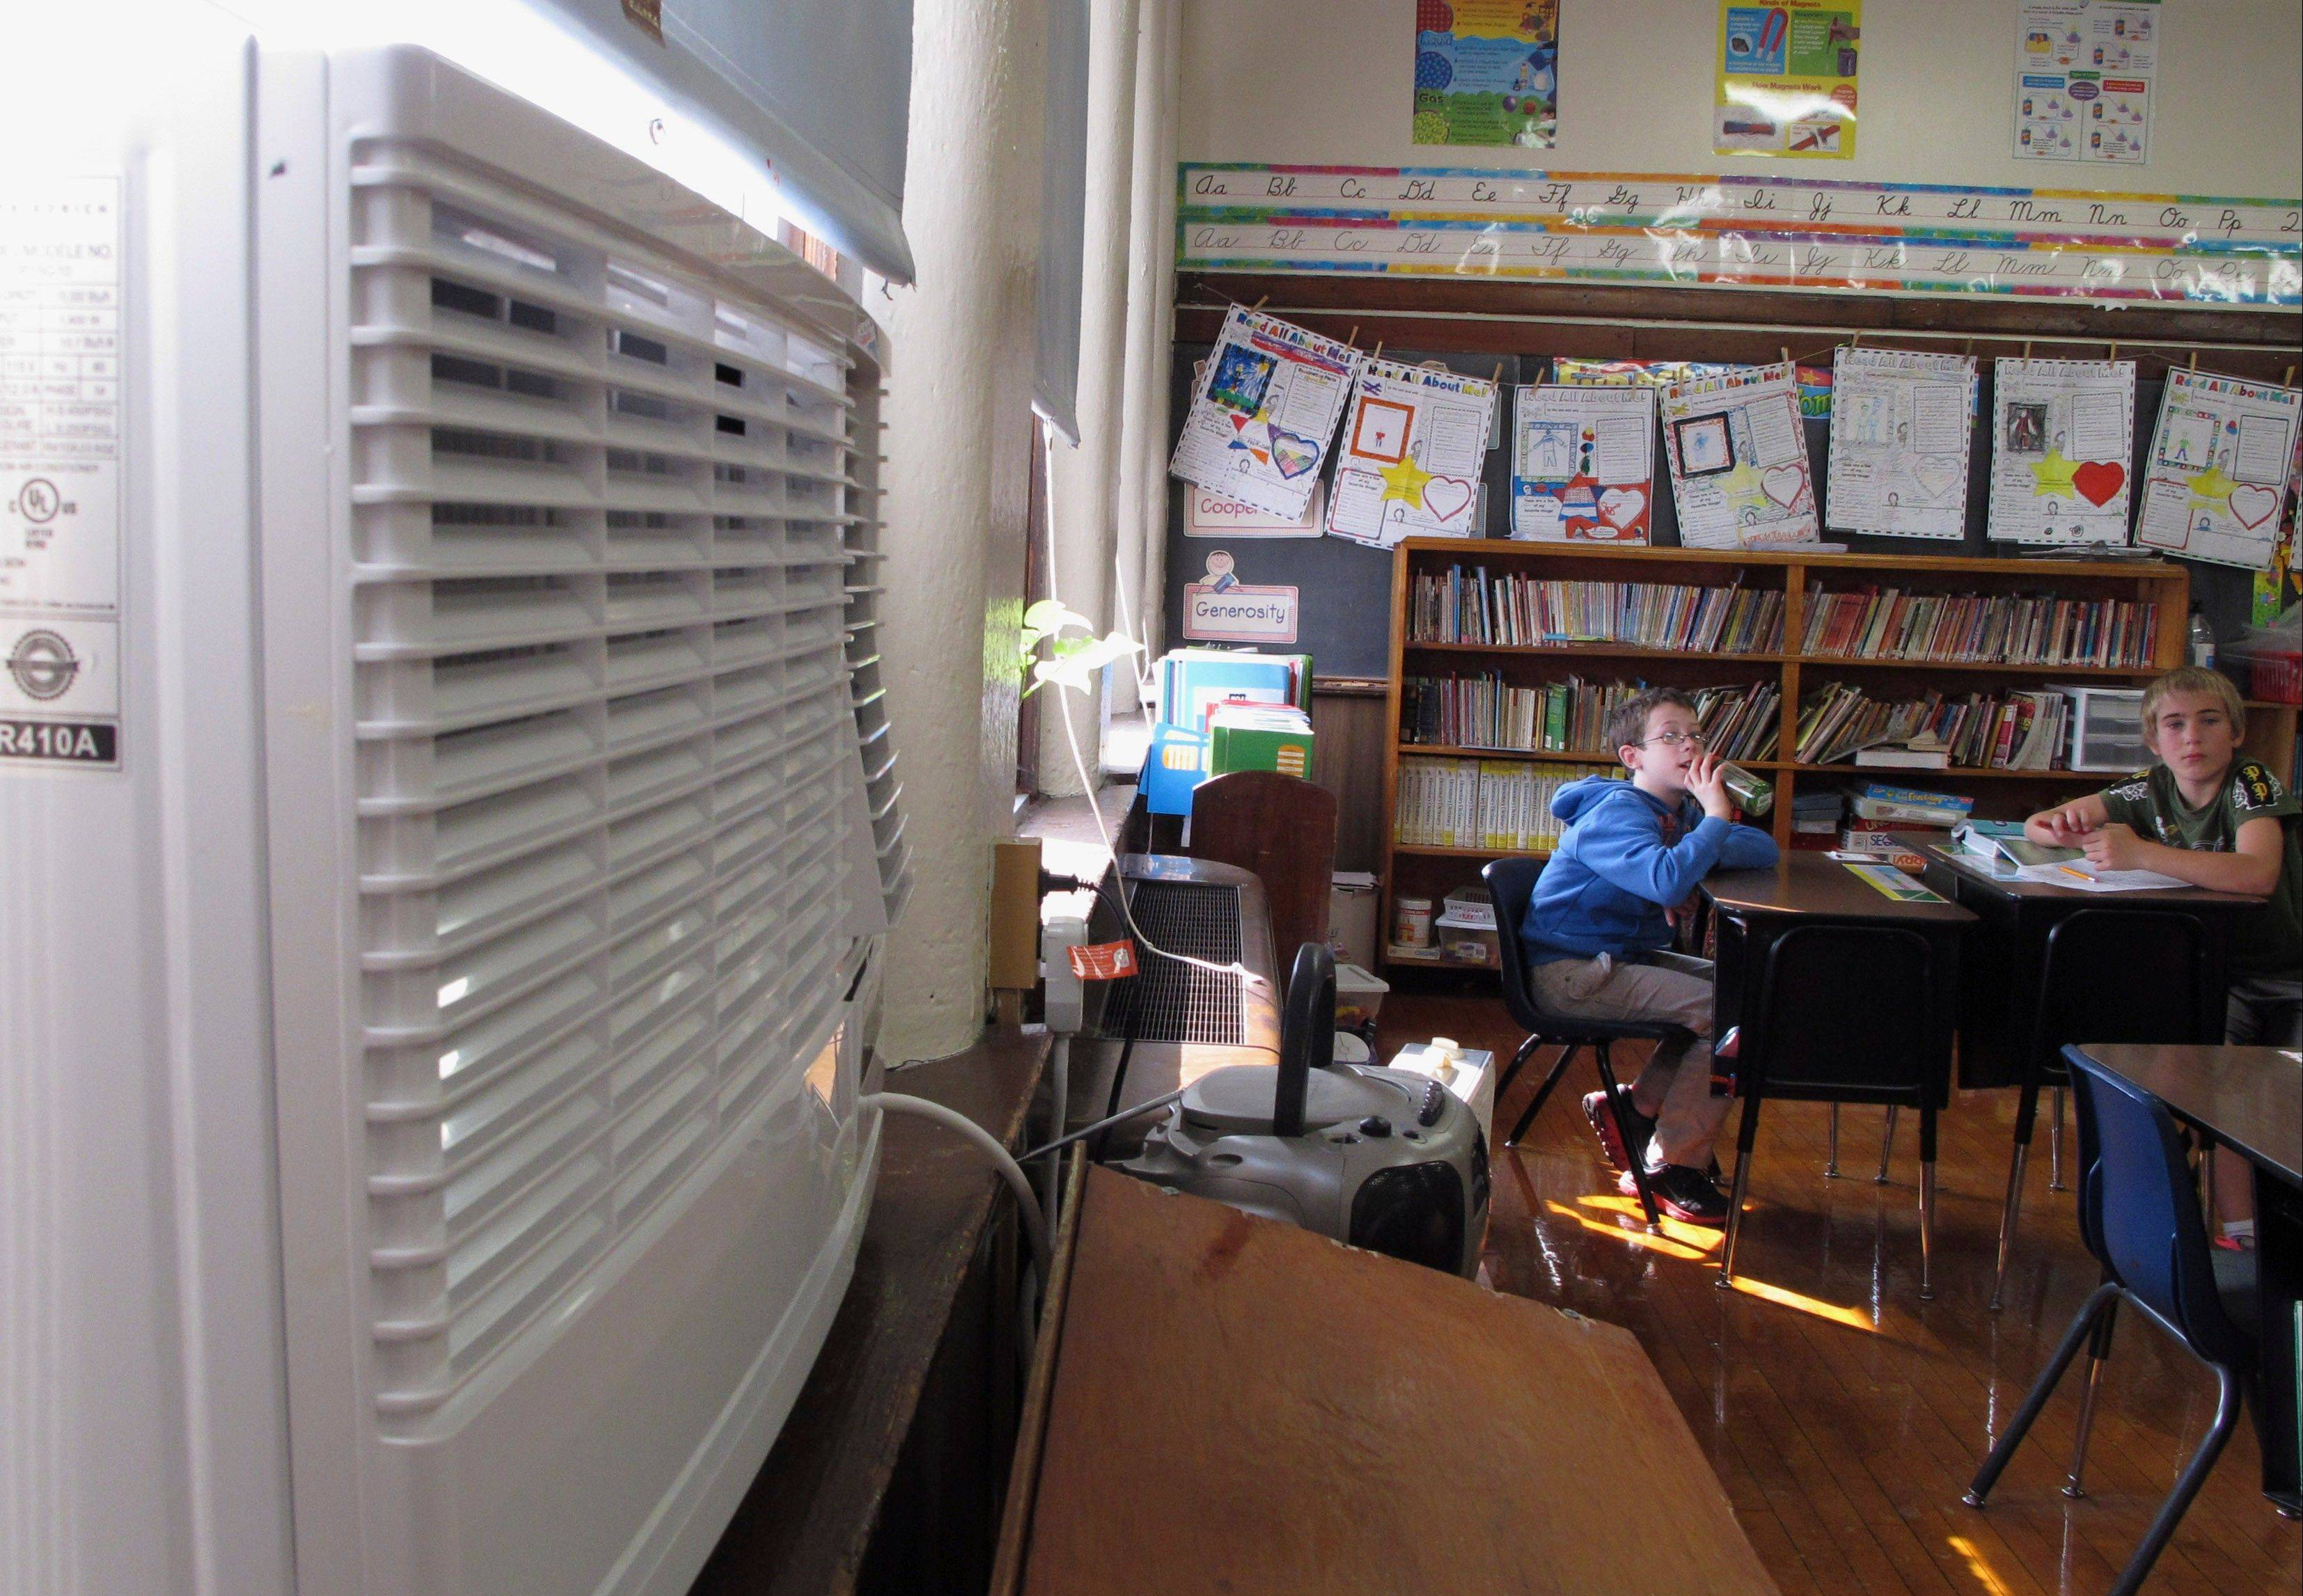 Texas-based Friedrich Air Conditioning Co. donated air conditioners to Bement Elementary School in Bement, Ill., after reading in an Associated Press story that it lacked air conditioning and was forced to send students home early on hot days.